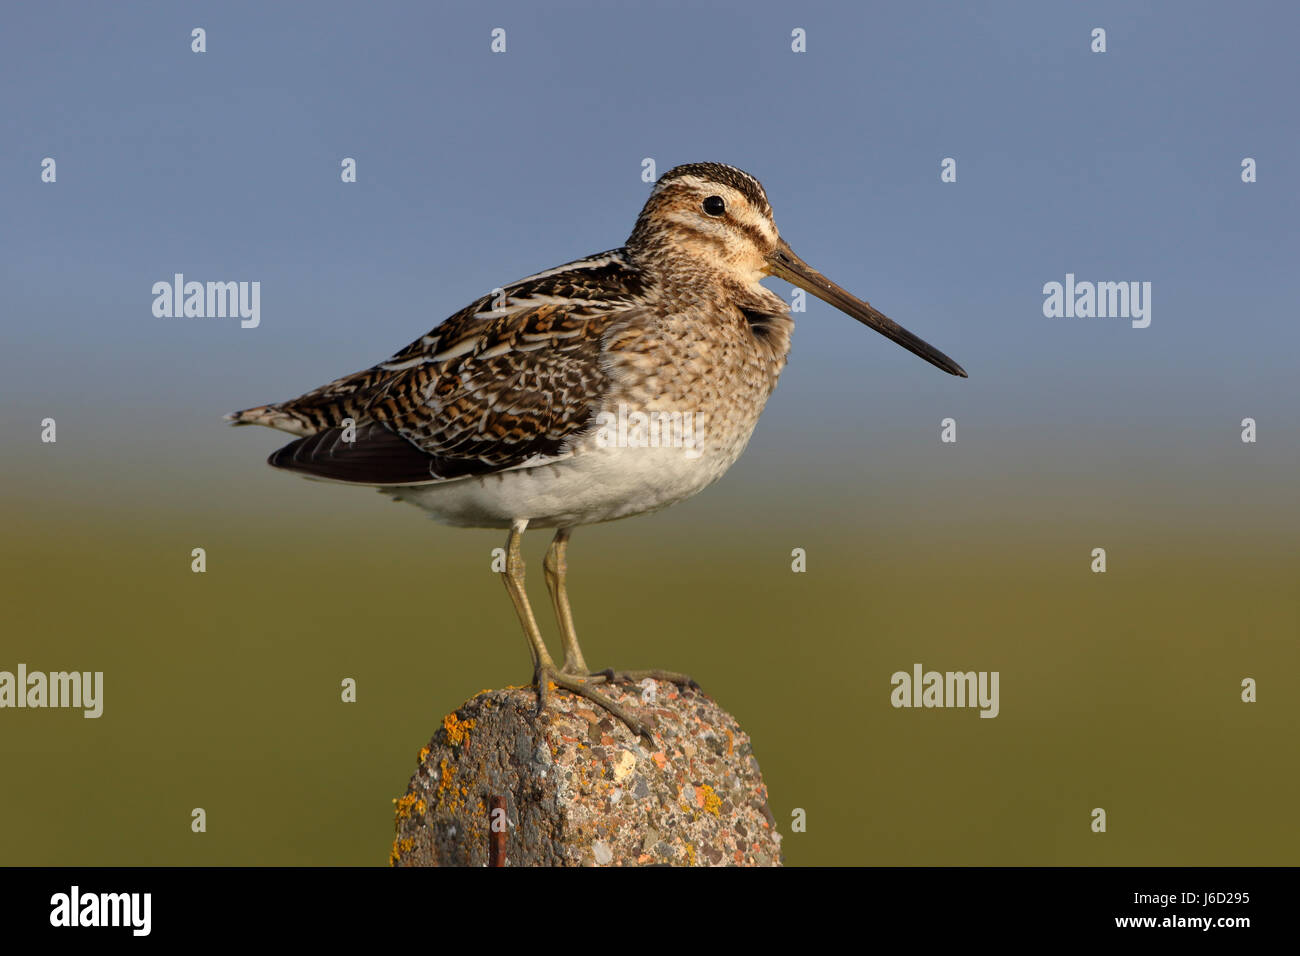 Common Snipe, Gallinago gallinago perched on a fence post, usually this sort of high vantage is a territorial watch - Stock Image